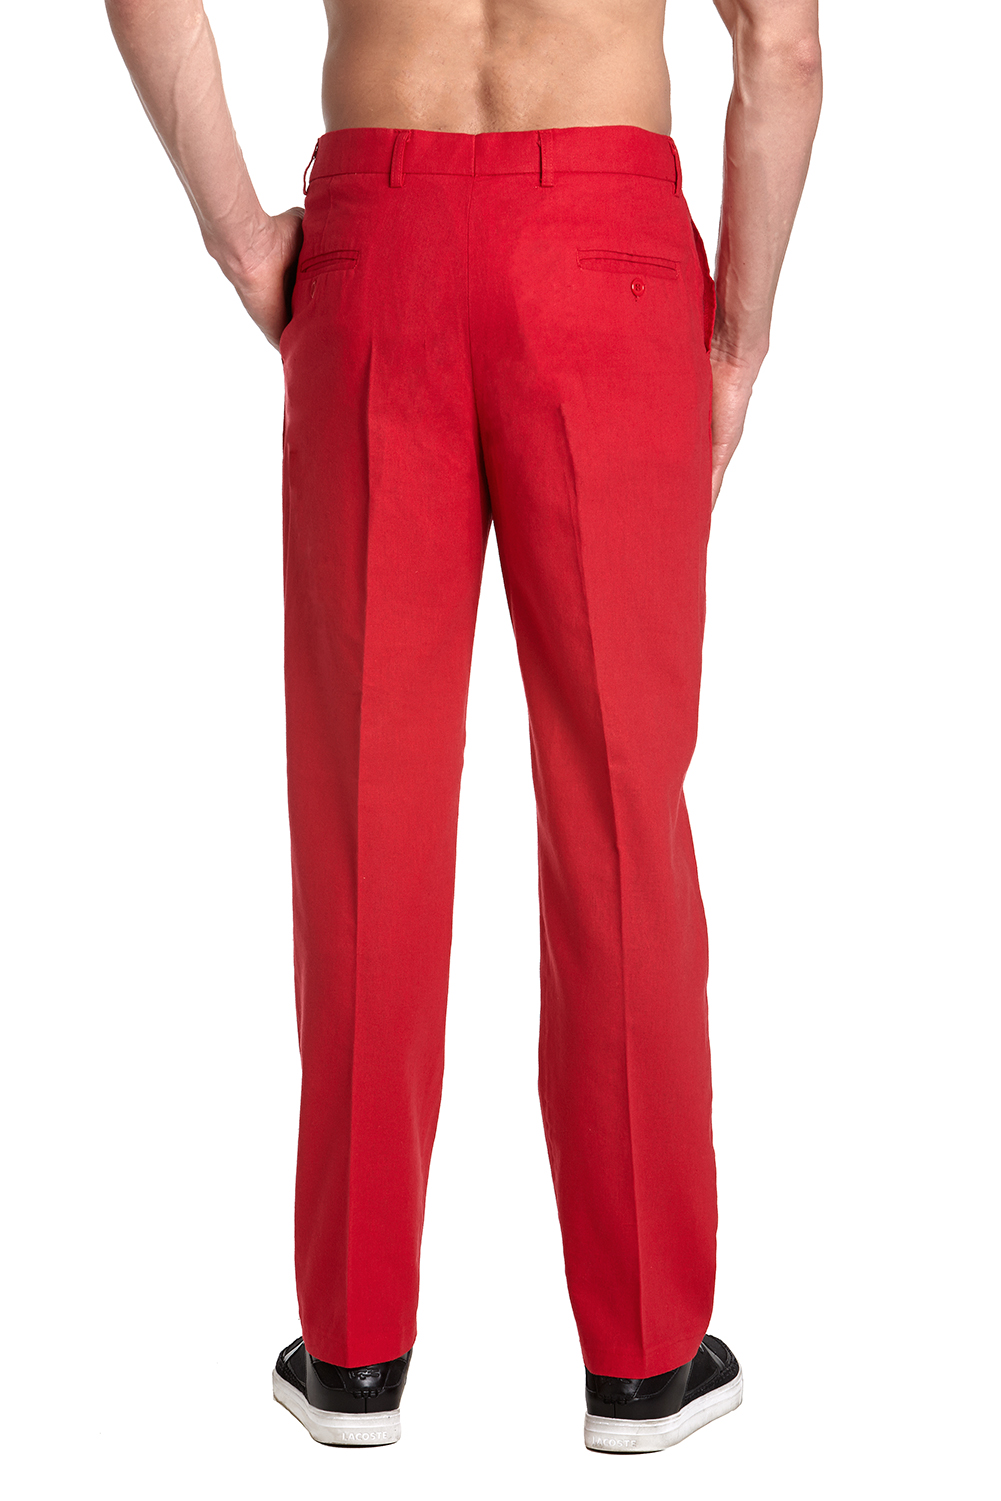 Shop for men's Dress Pants online at loadingtag.ga Browse the latest Pants styles for men from Jos. A Bank. FREE shipping on orders over $